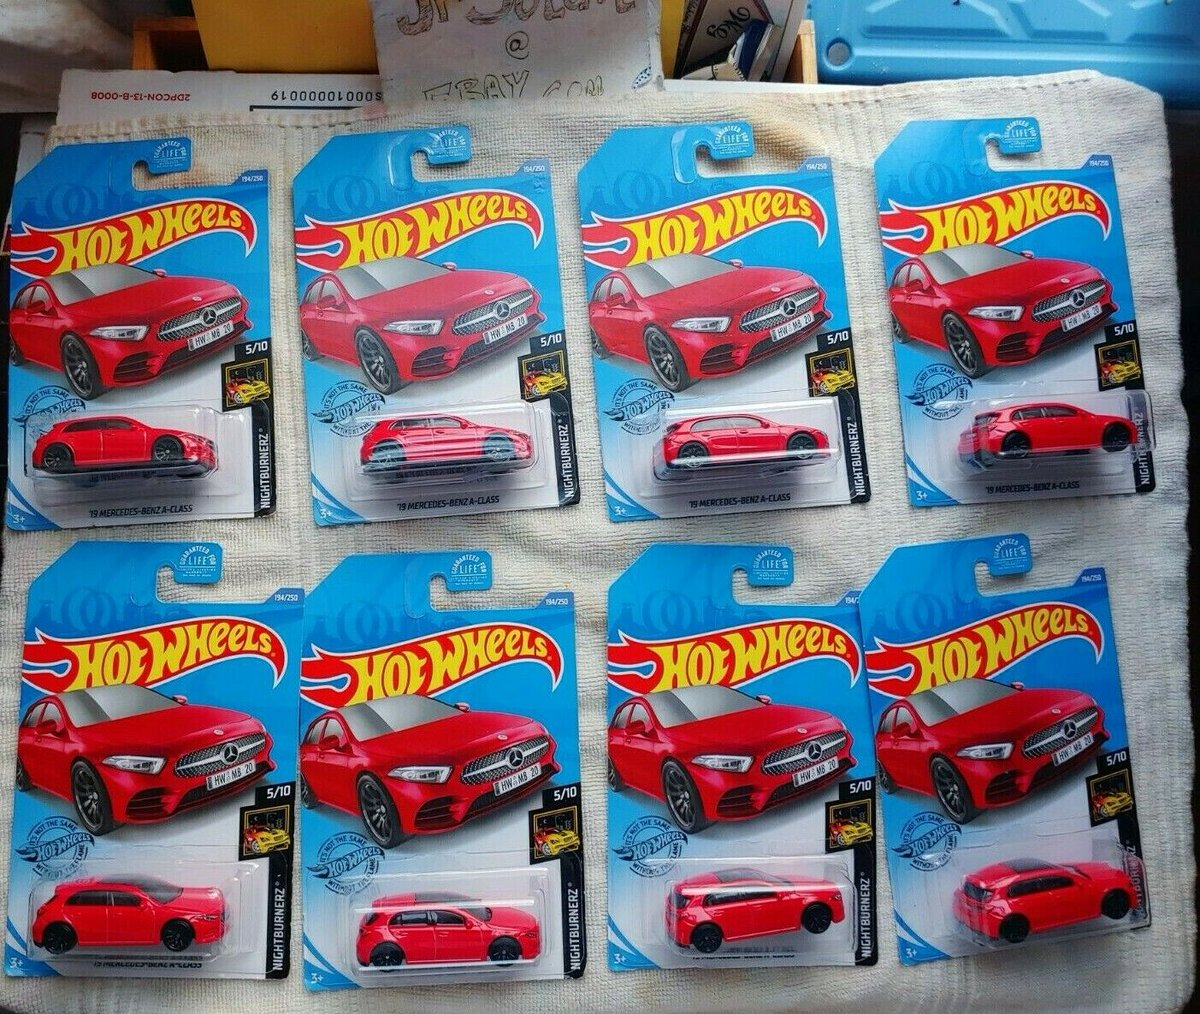 $55 + FREE SHIPPING:  Hot Wheels 2020 : '19 MERCEDES-BENZ A-CLASS 194/250 NIGHTBERNZ 5/10 (LOT OF 10) #HotWheels 2019 MERCEDES-BENZ A-CLASS #red https://t.co/MPi8j0qcB3 https://t.co/t4cPtEwHi5